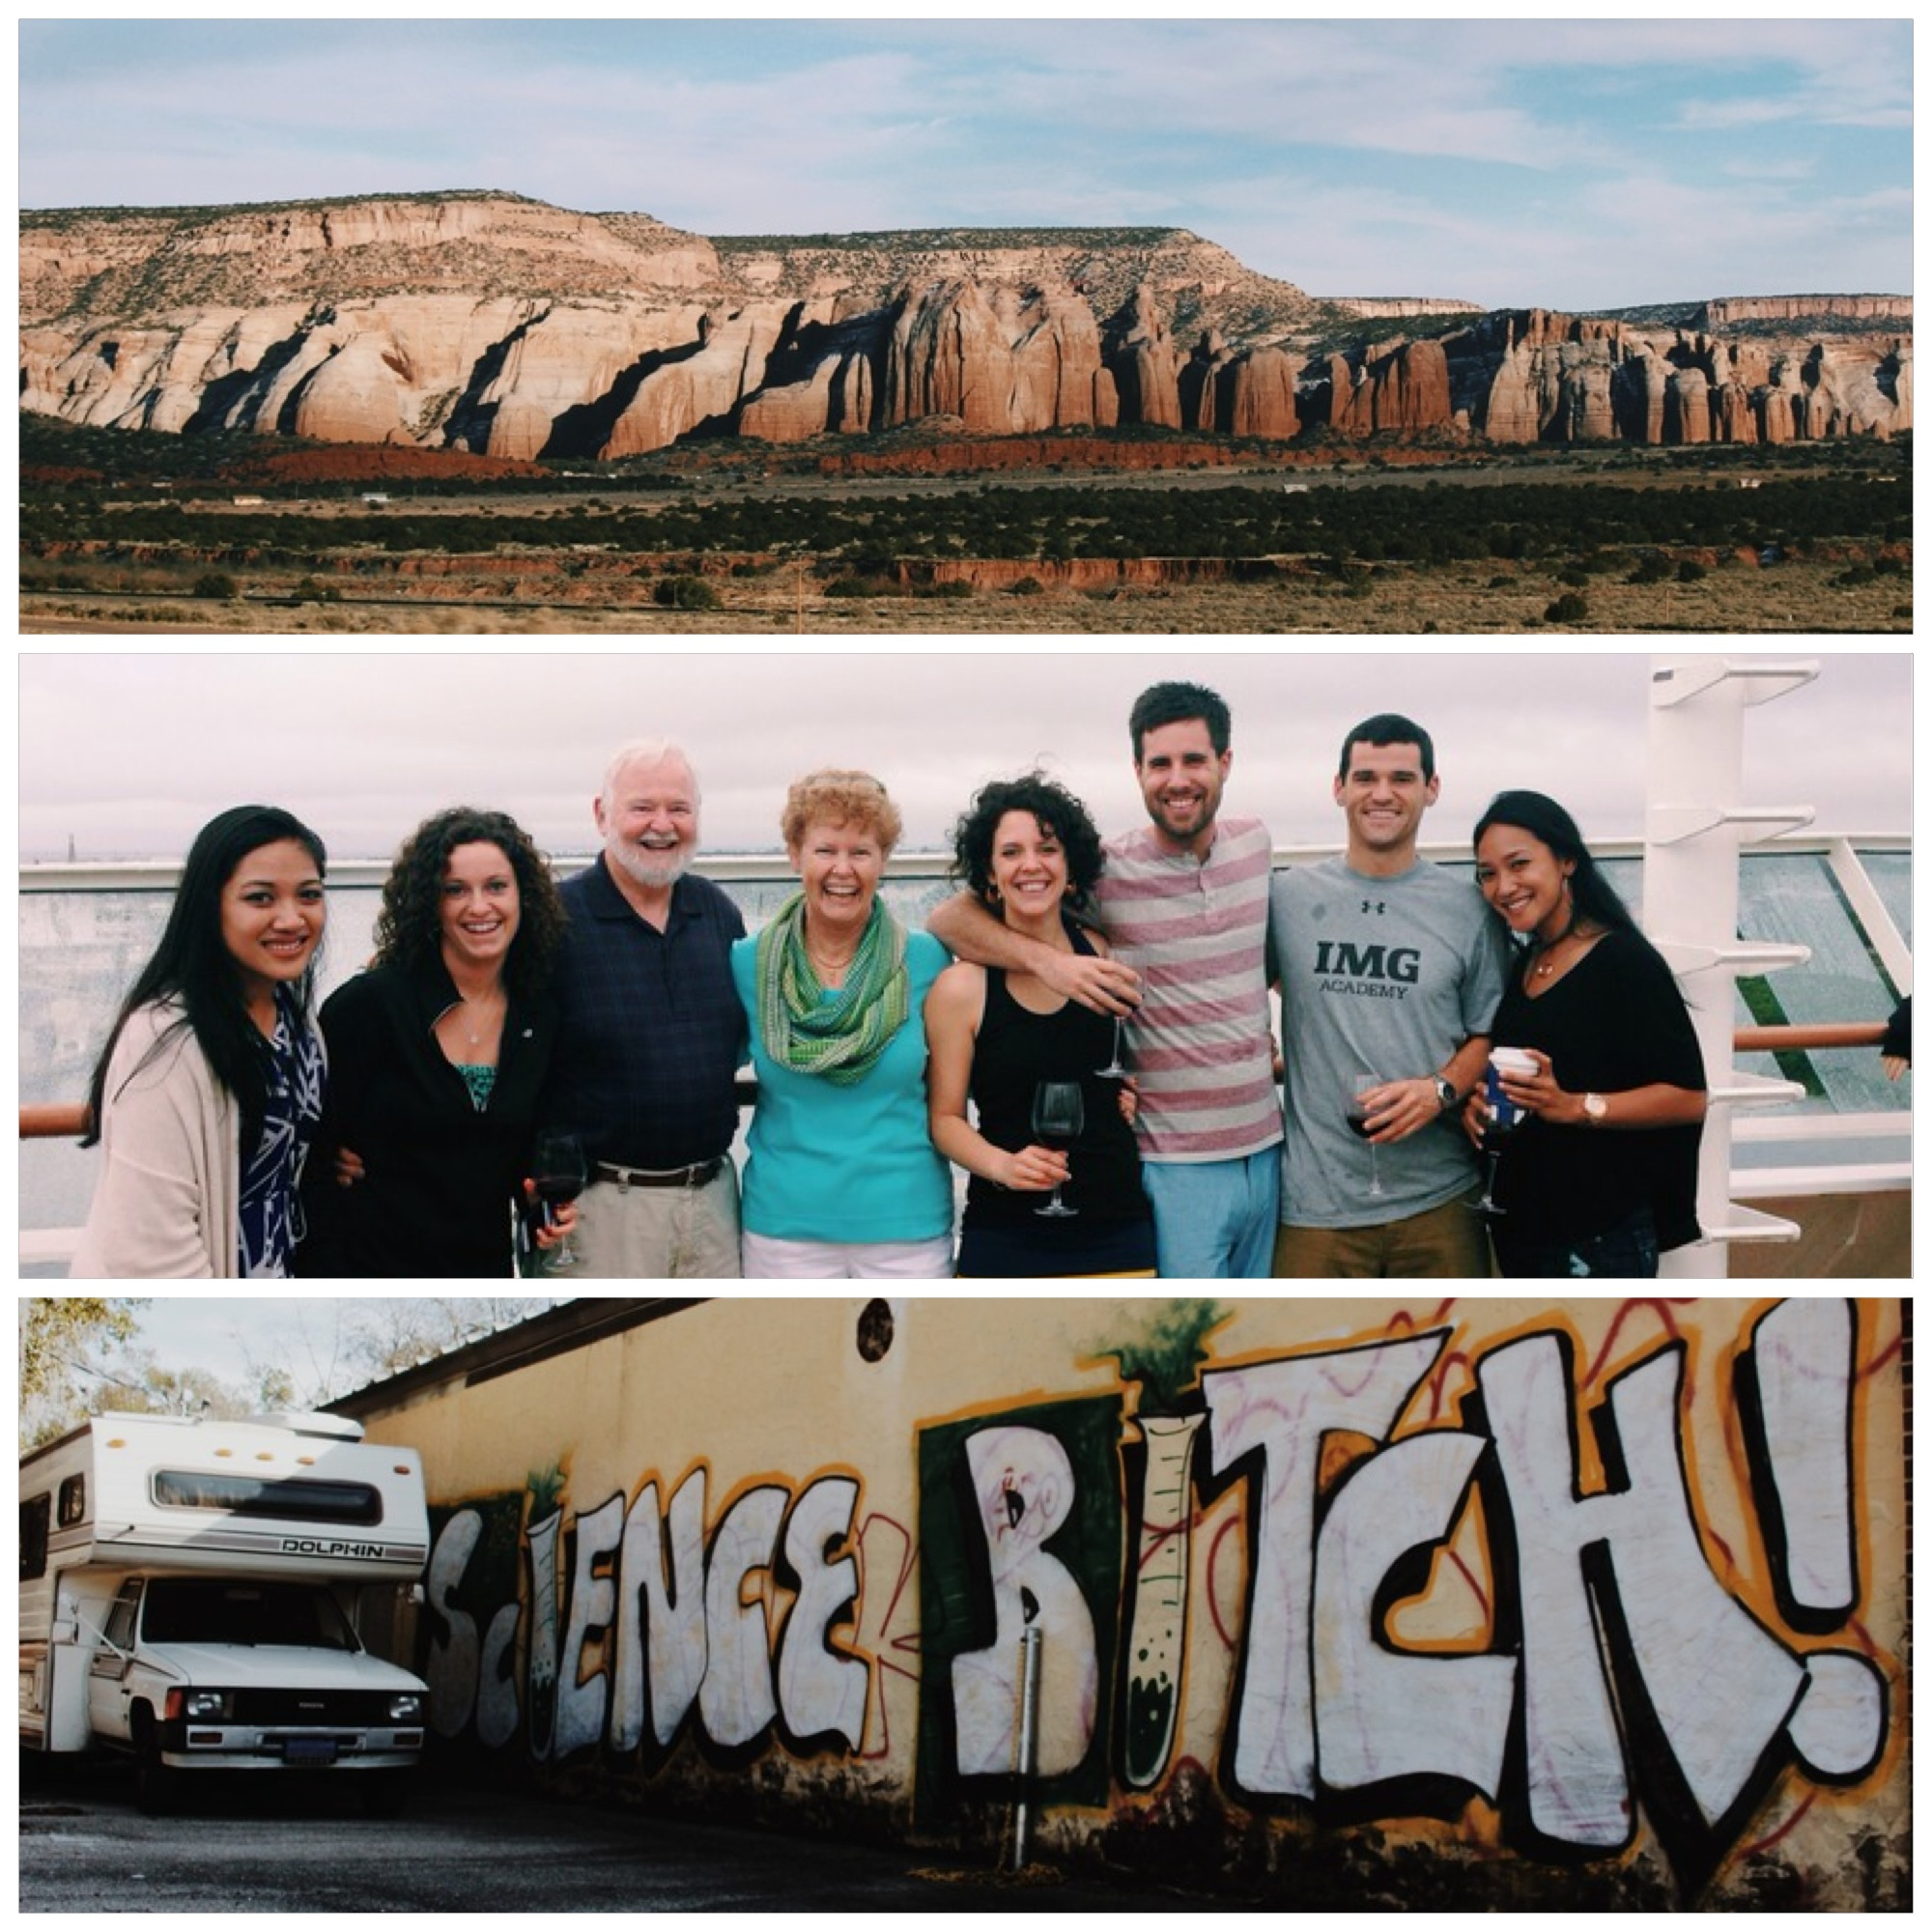 Somewhere in AZ or NM. Enjoying family time on a holiday cruise, and our RV'sBreaking Bad moment.